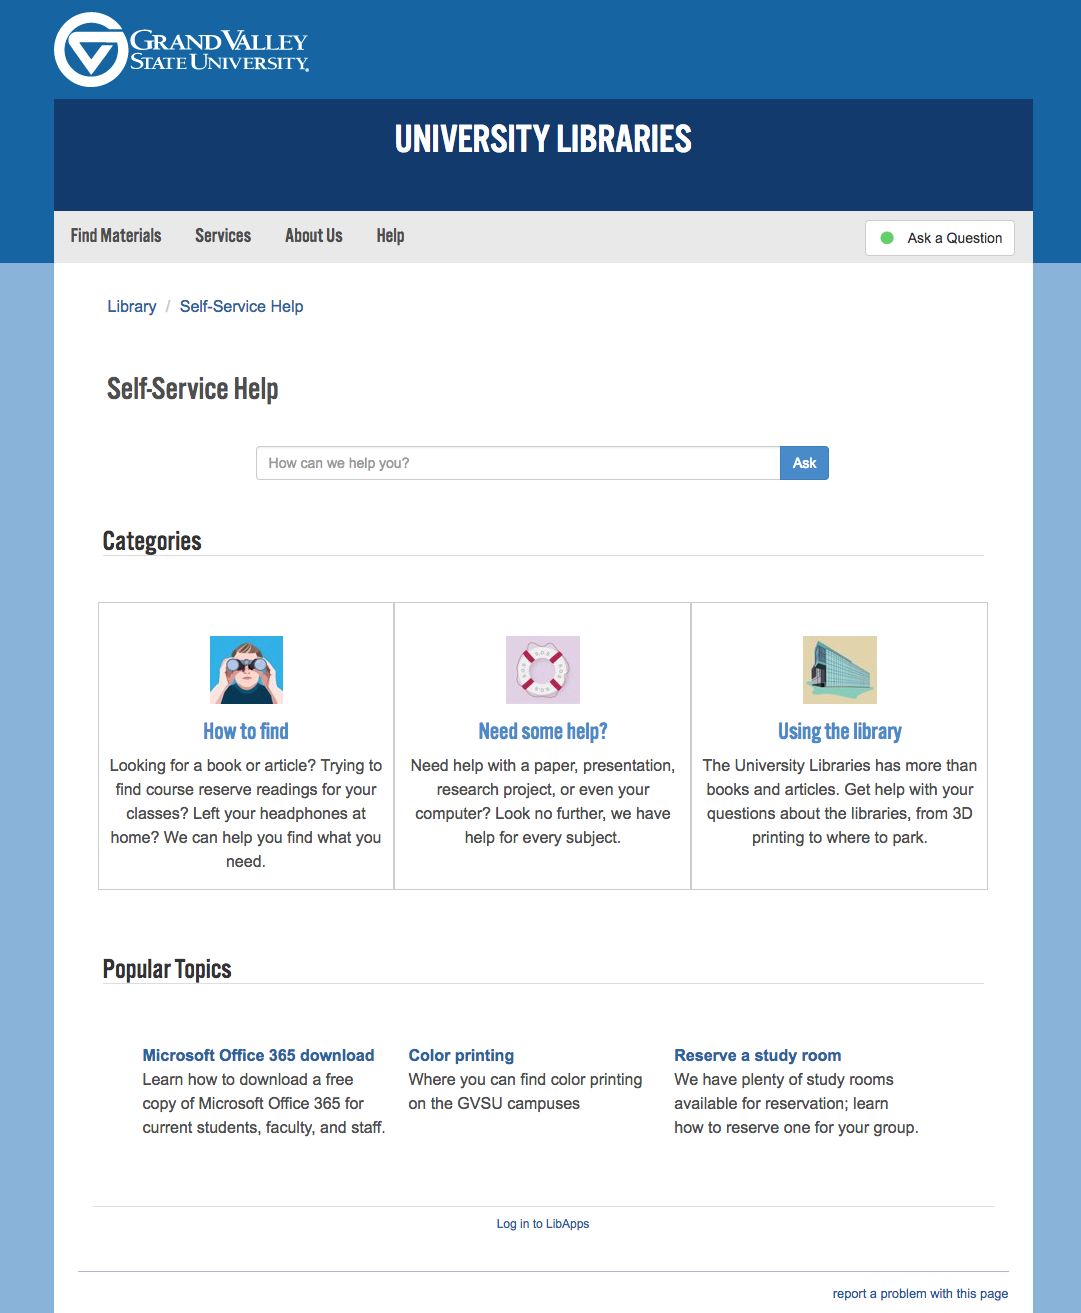 Grand Valley State University knowledge base